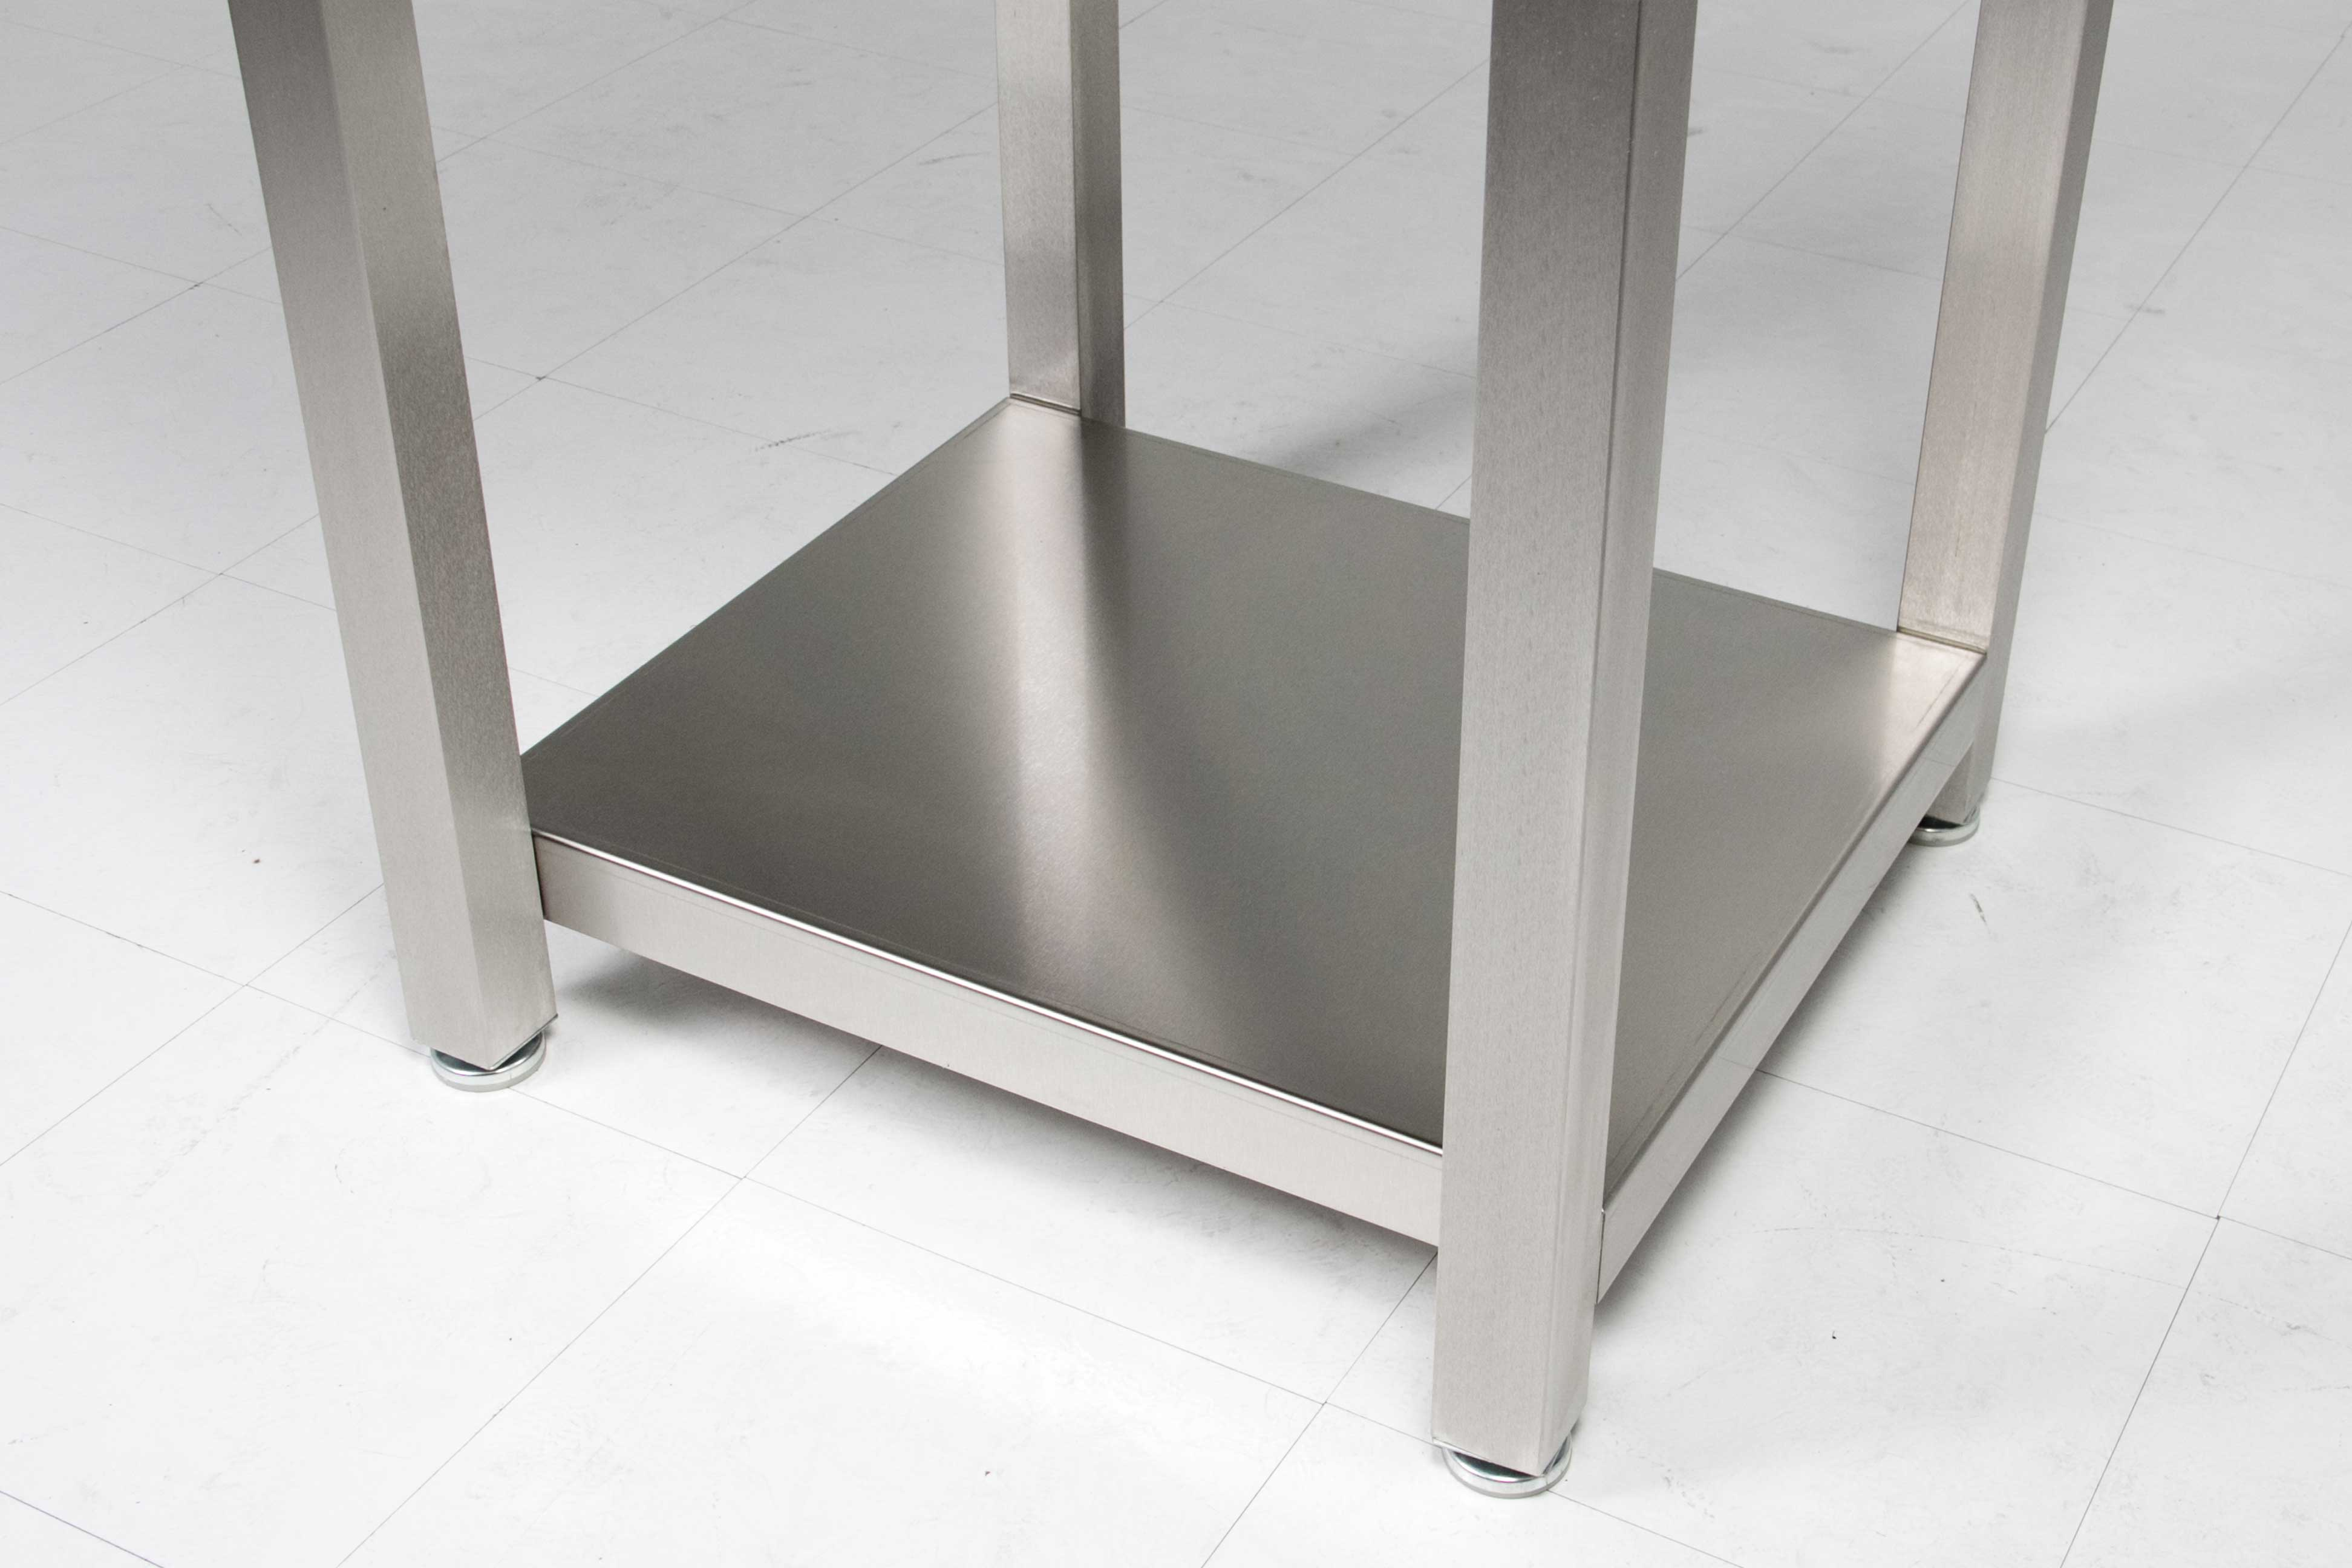 Stainless Steel Base for Cucina Laforza Butcher Block